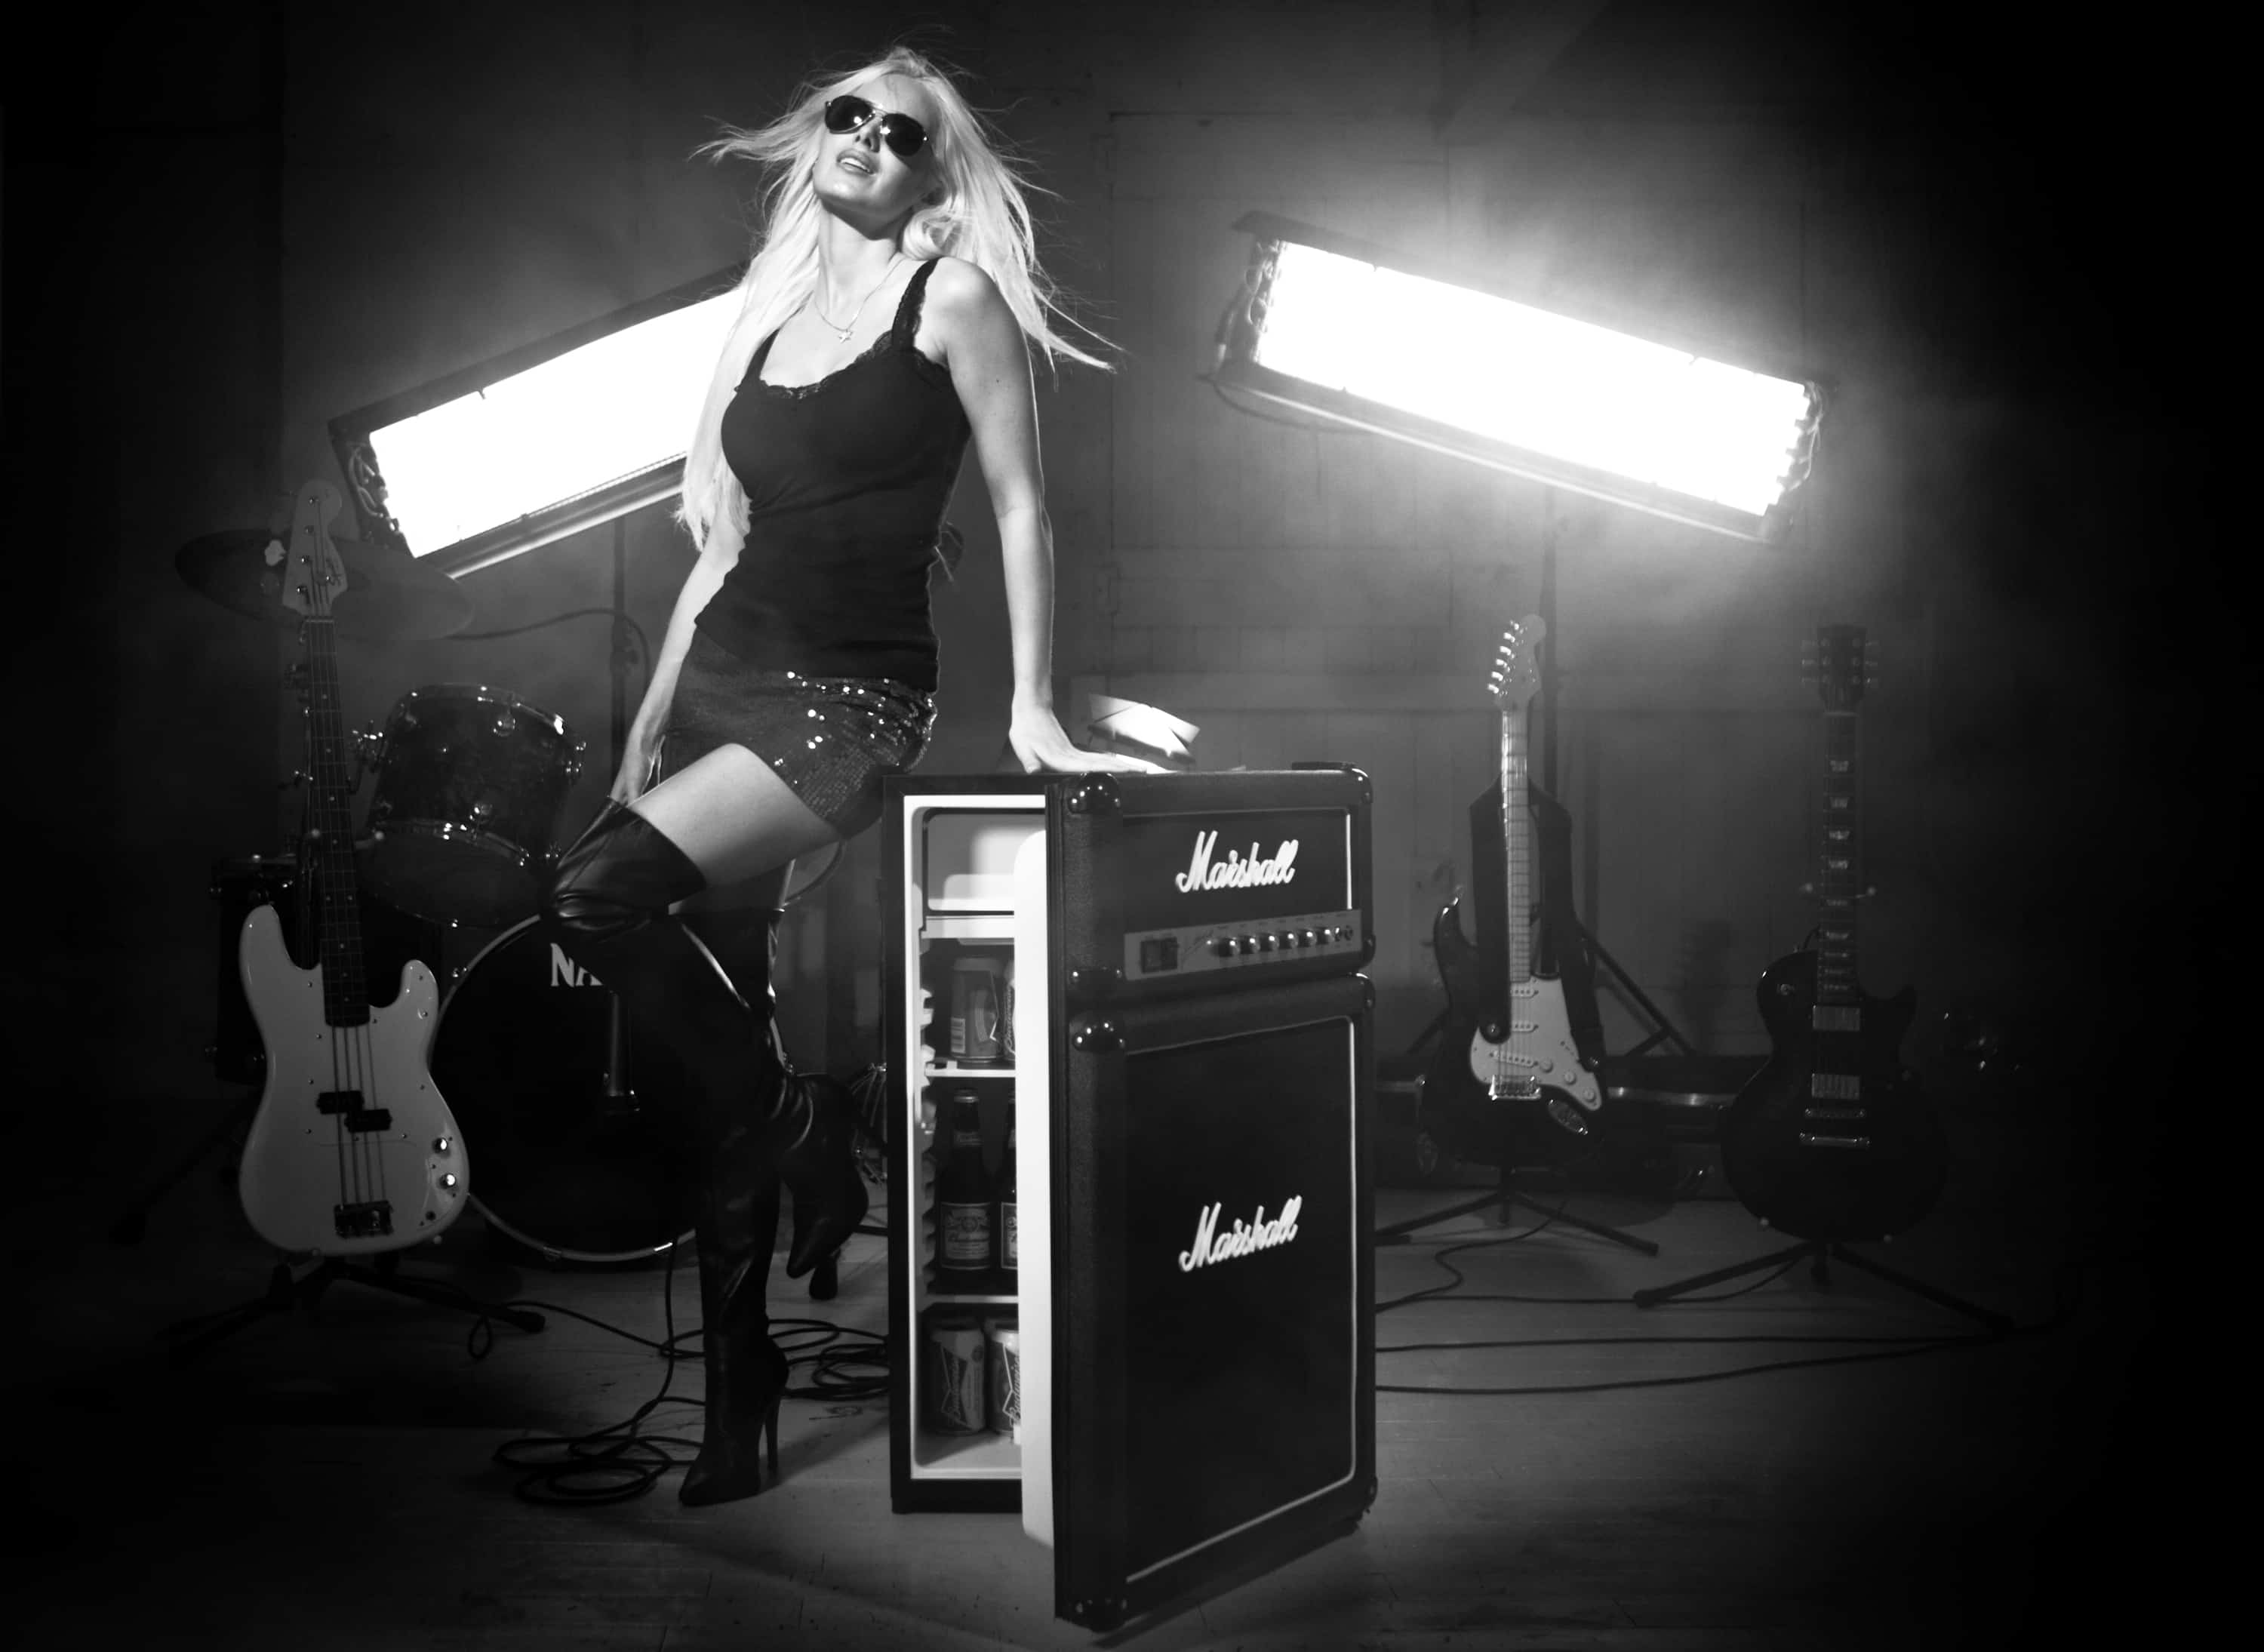 Marshall Fridge by Marshall Amplification With Rocker Chick Model